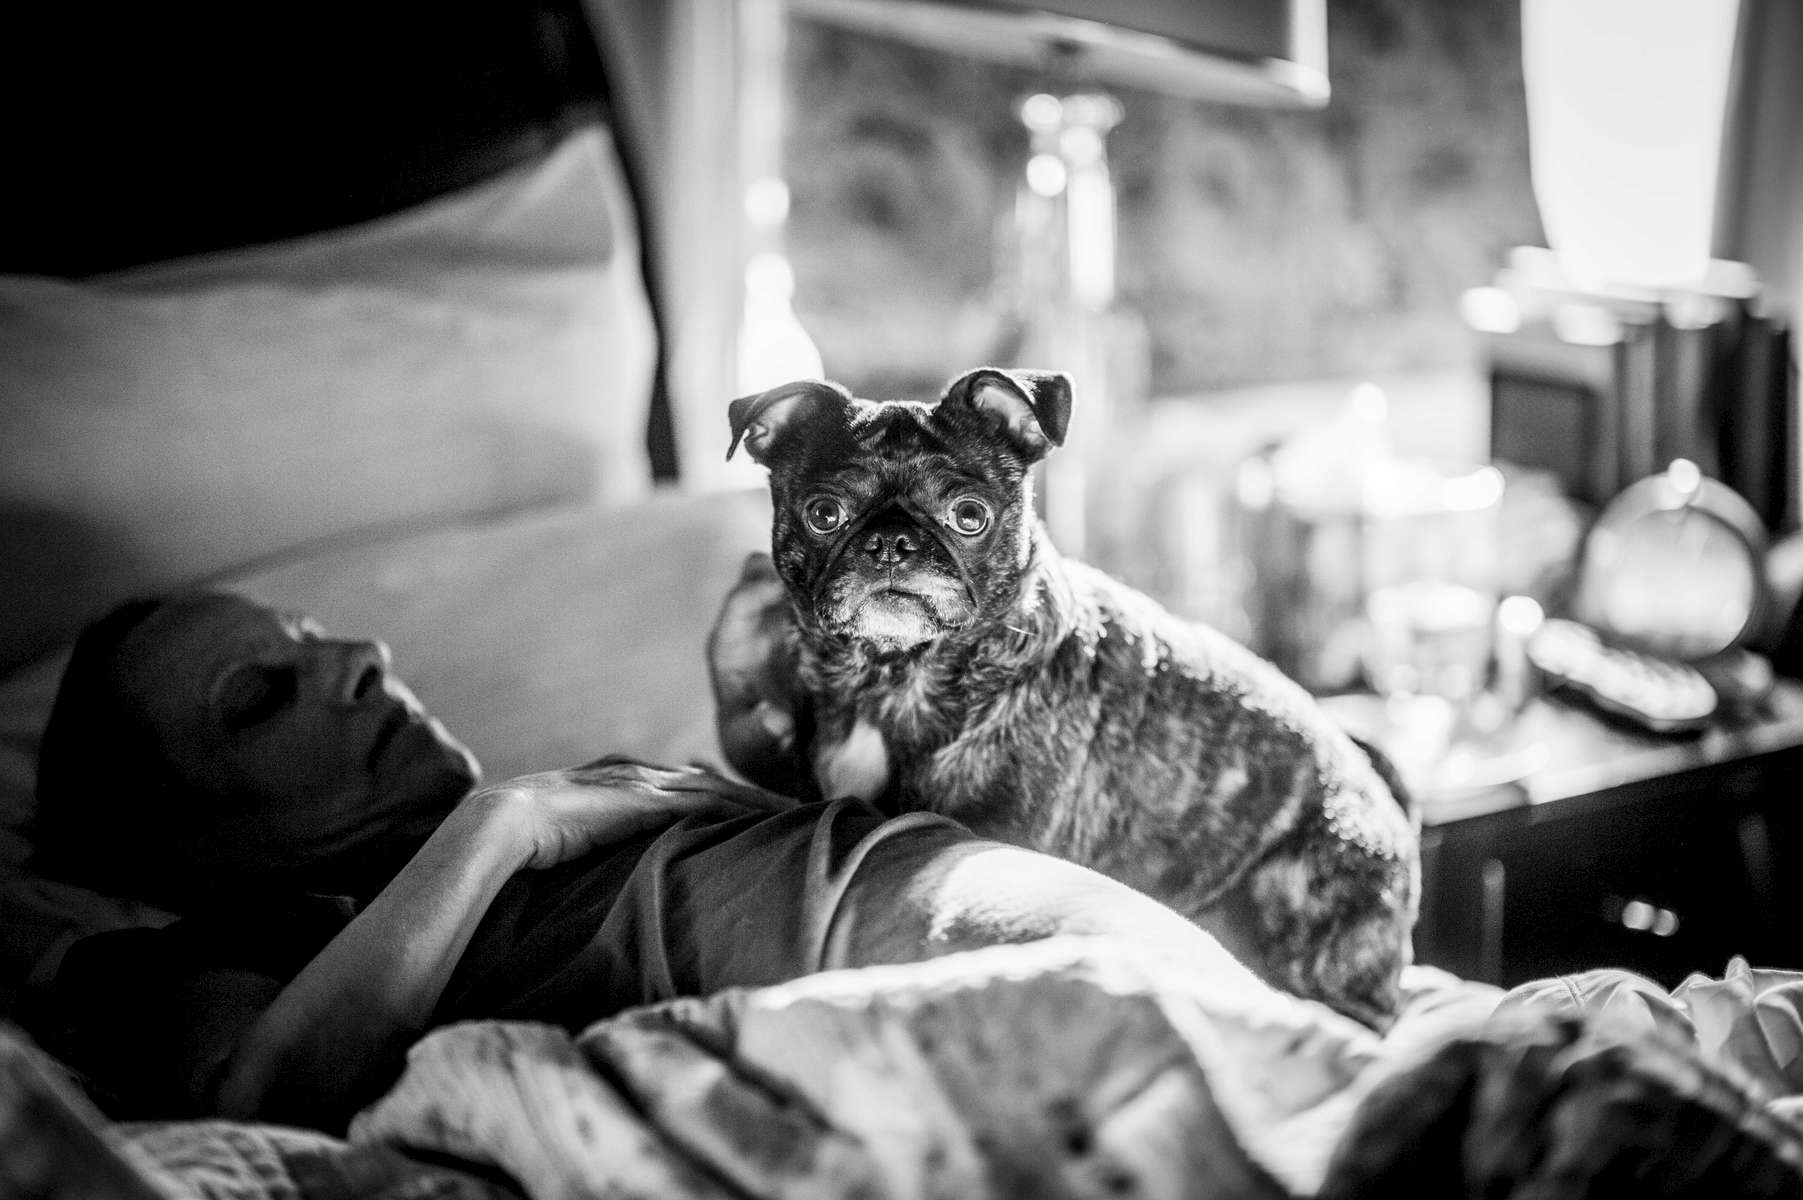 As Mom got weaker, she did not want to be touched. However, she wasn't bothered by Moses, a five-year-old Pug-Boston Terriermix who belongs to a close friend. He lay by her side, and often on top of her, bringing her comfort and many laughs.